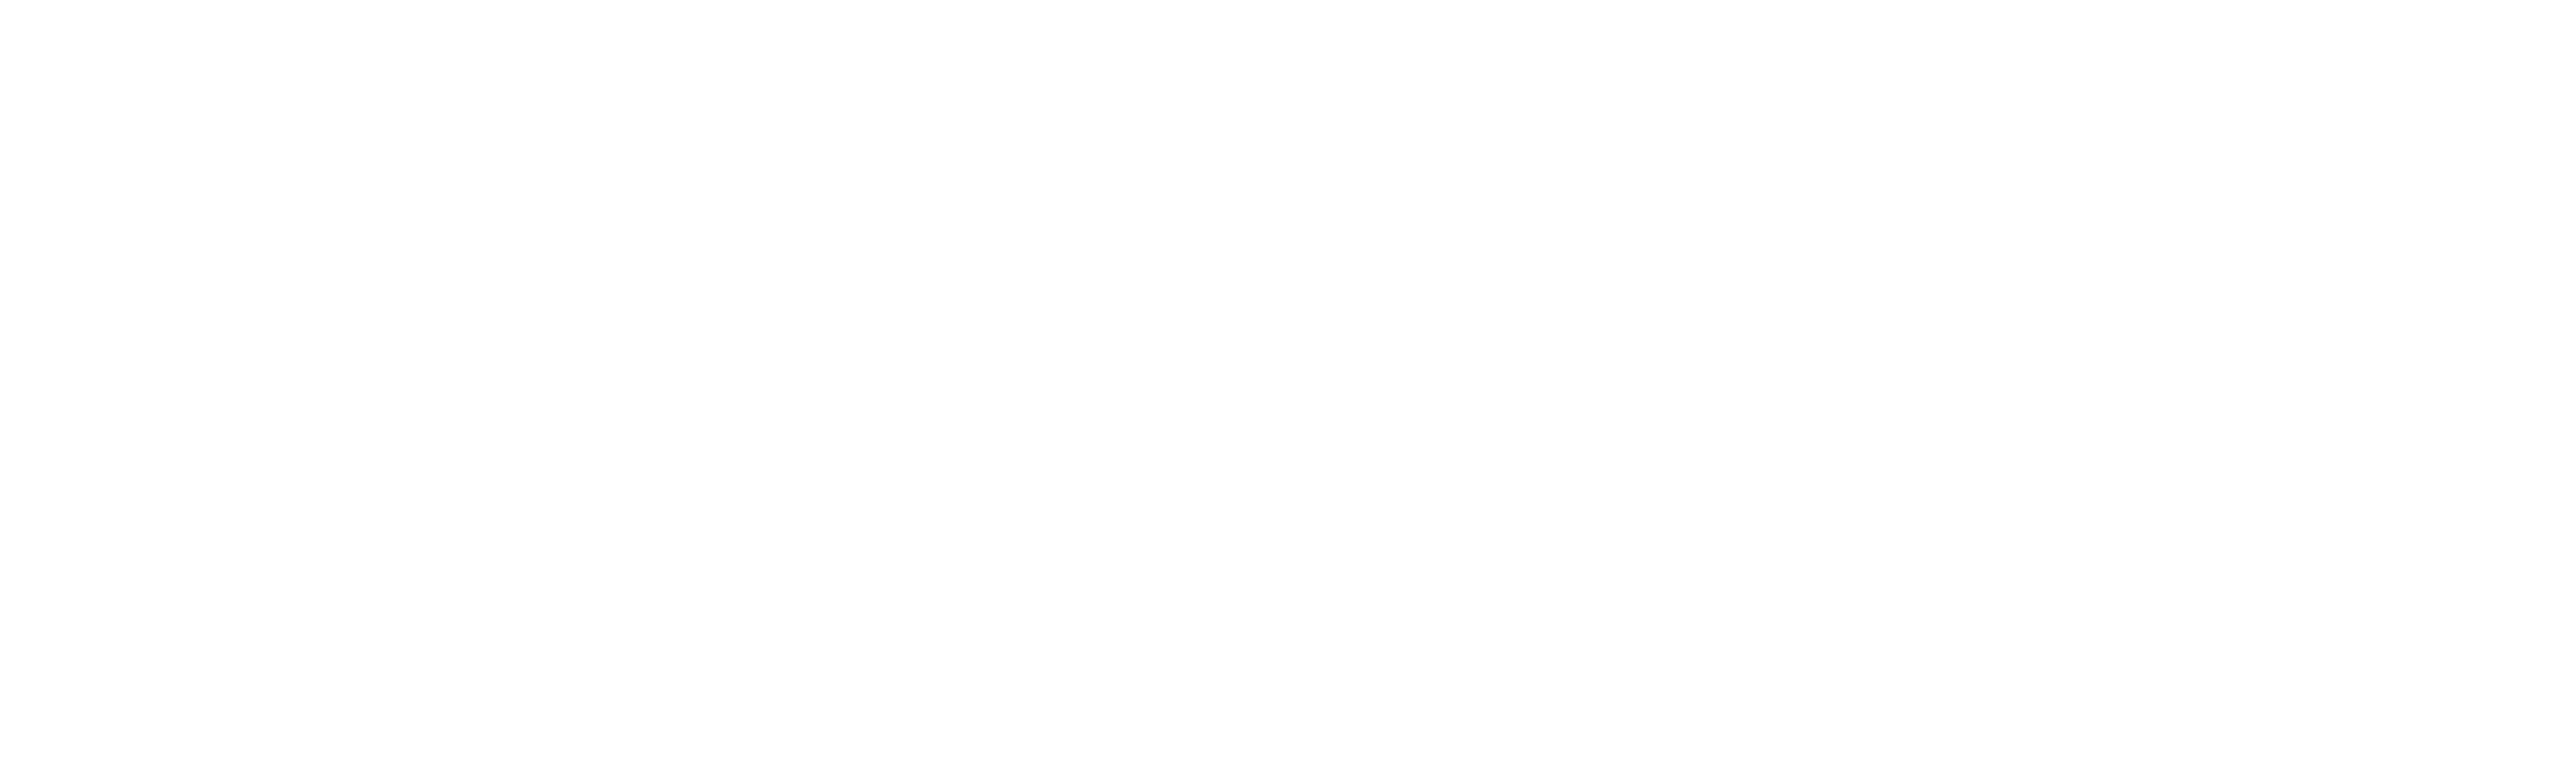 Winter special deal at Springfield Apartments in Murfreesboro, Tennessee